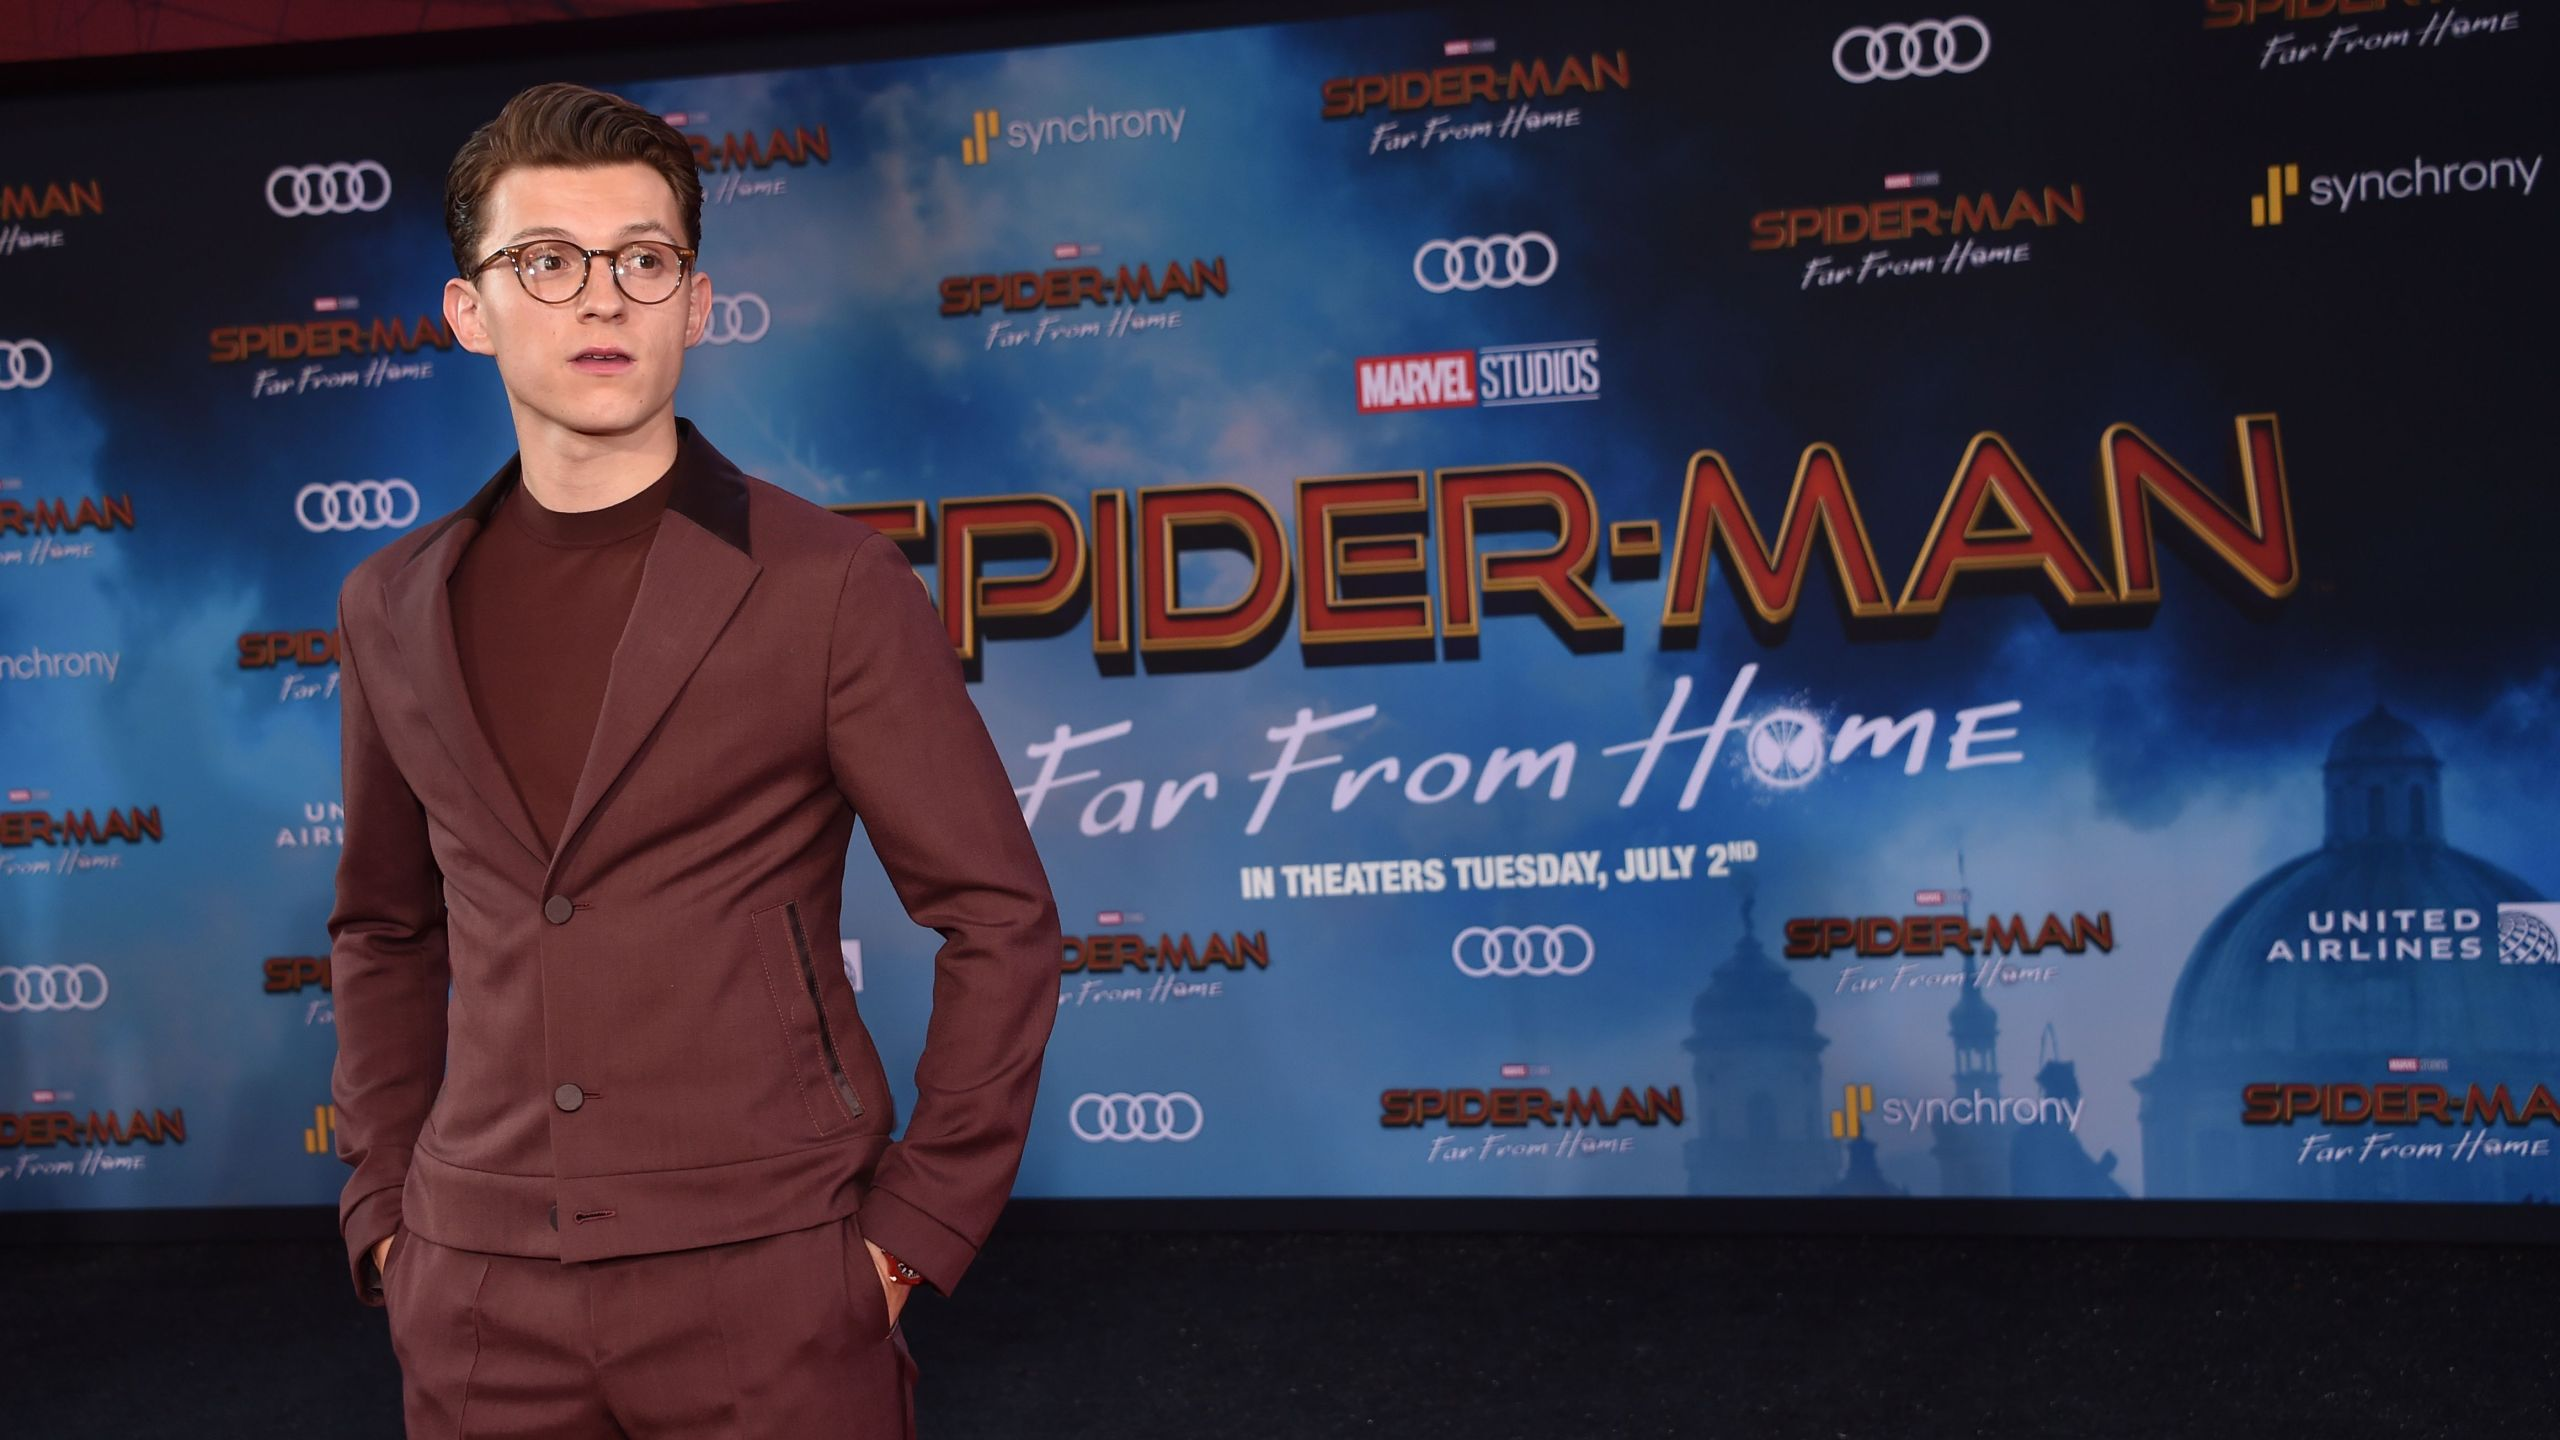 British actor Tom Holland arrives for the Spider-Man: Far From Home World premiere at the TCL Chinese theatre in Hollywood on June 26, 2019. (Credit: Chris Delmas Delmas/AFP/Getty Images)